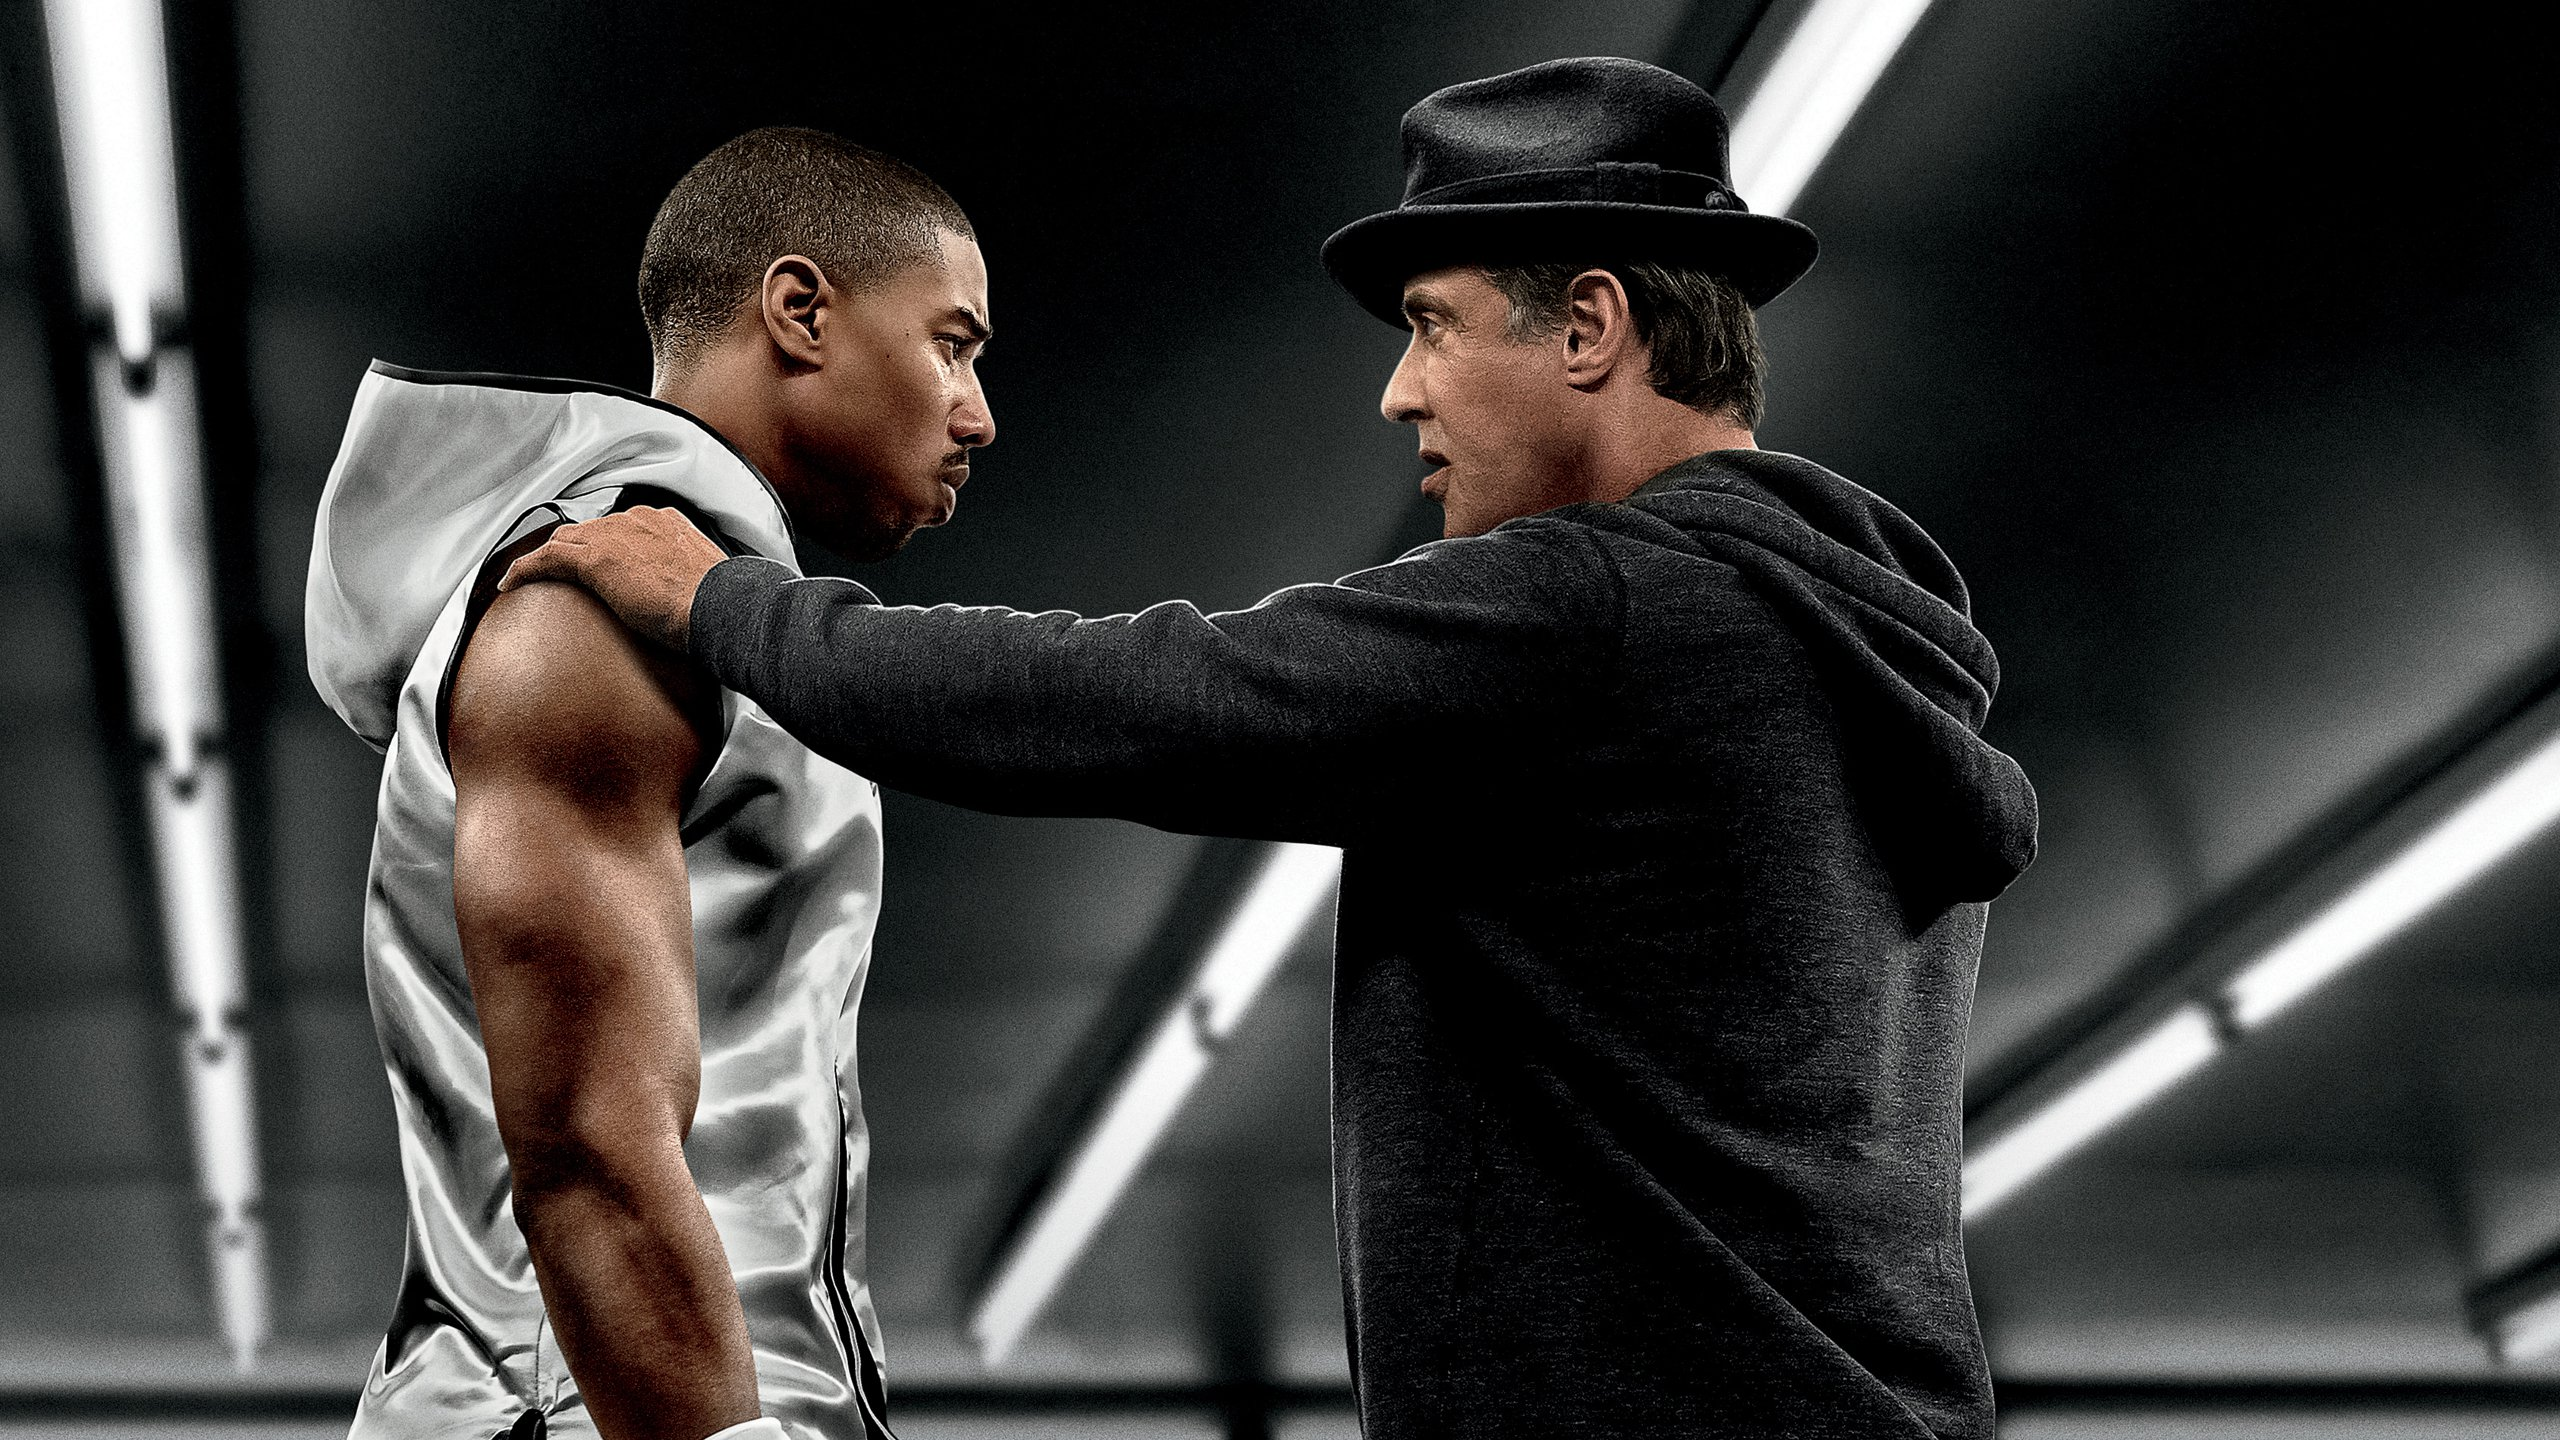 creed analysis narrative first